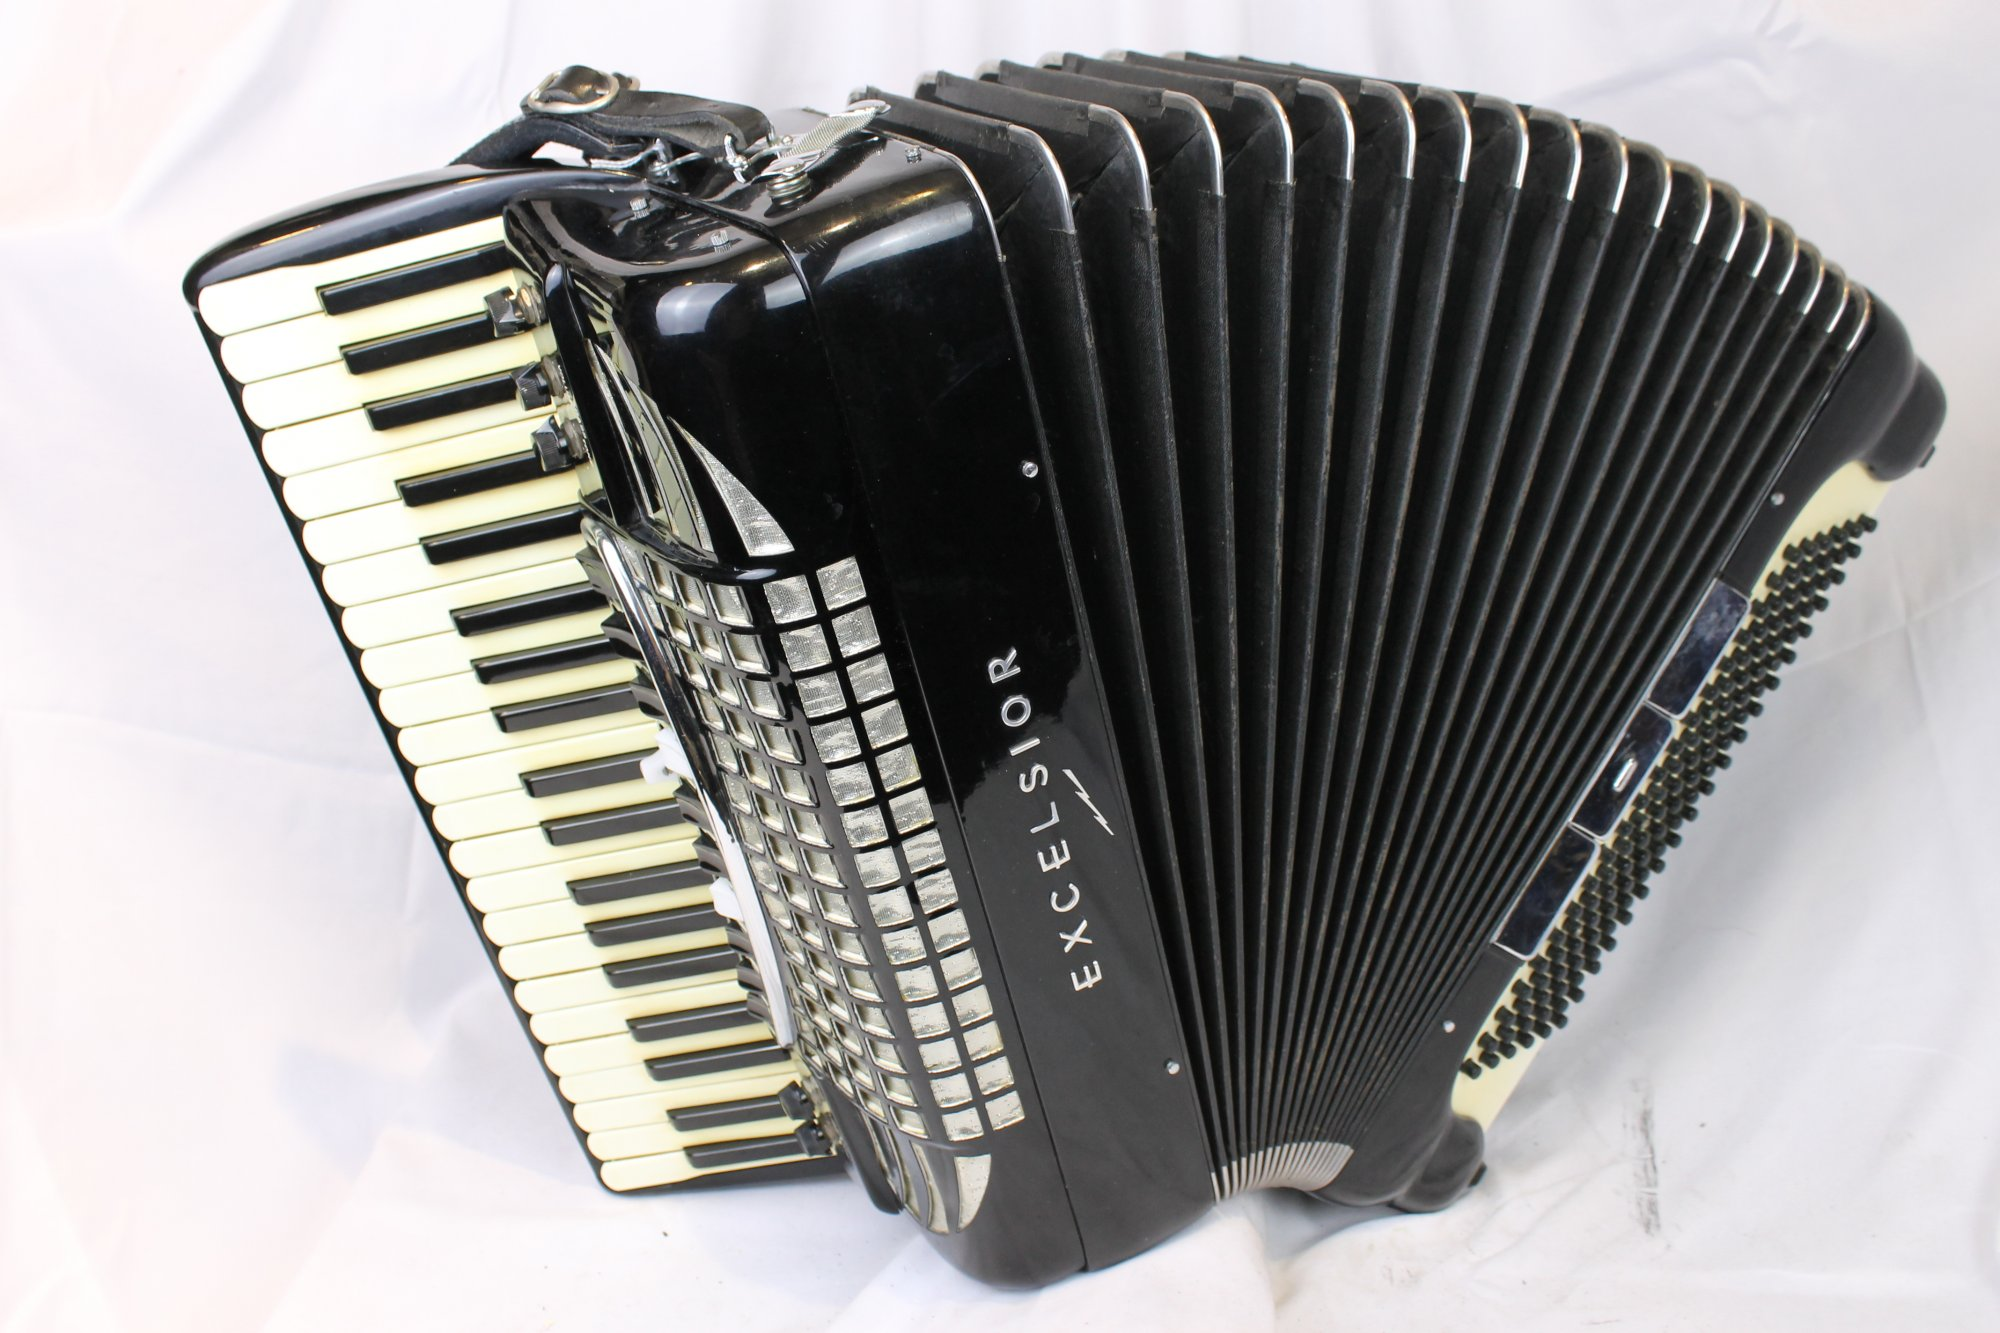 3645 - Excelsior Symphony Piano Accordion LMMH 41 120